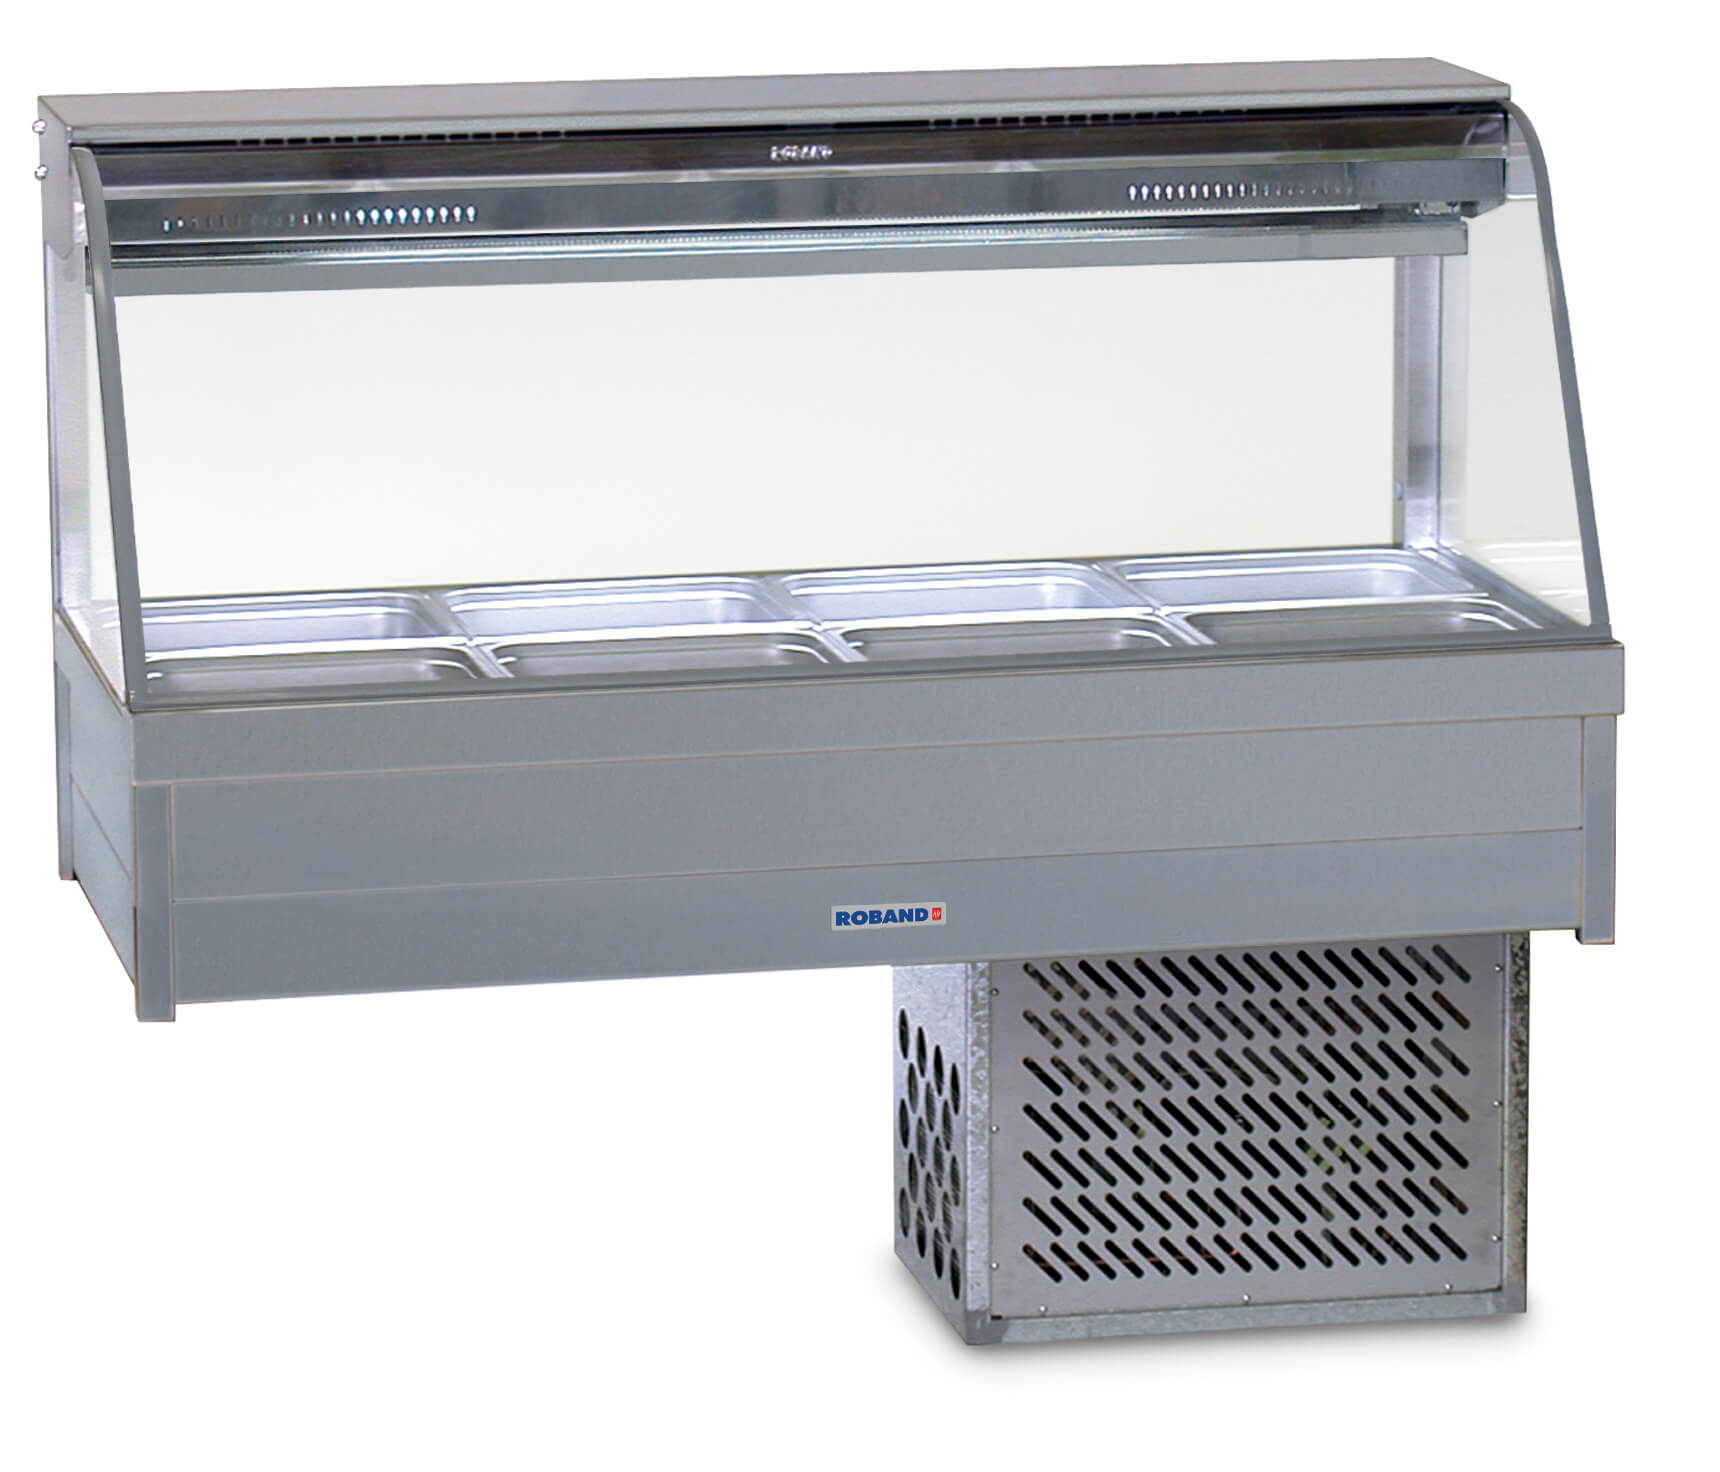 Roband CFX24RD Curved Glass Refrigerated Display Bar – Piped and Foamed only (no motor), 8 pans